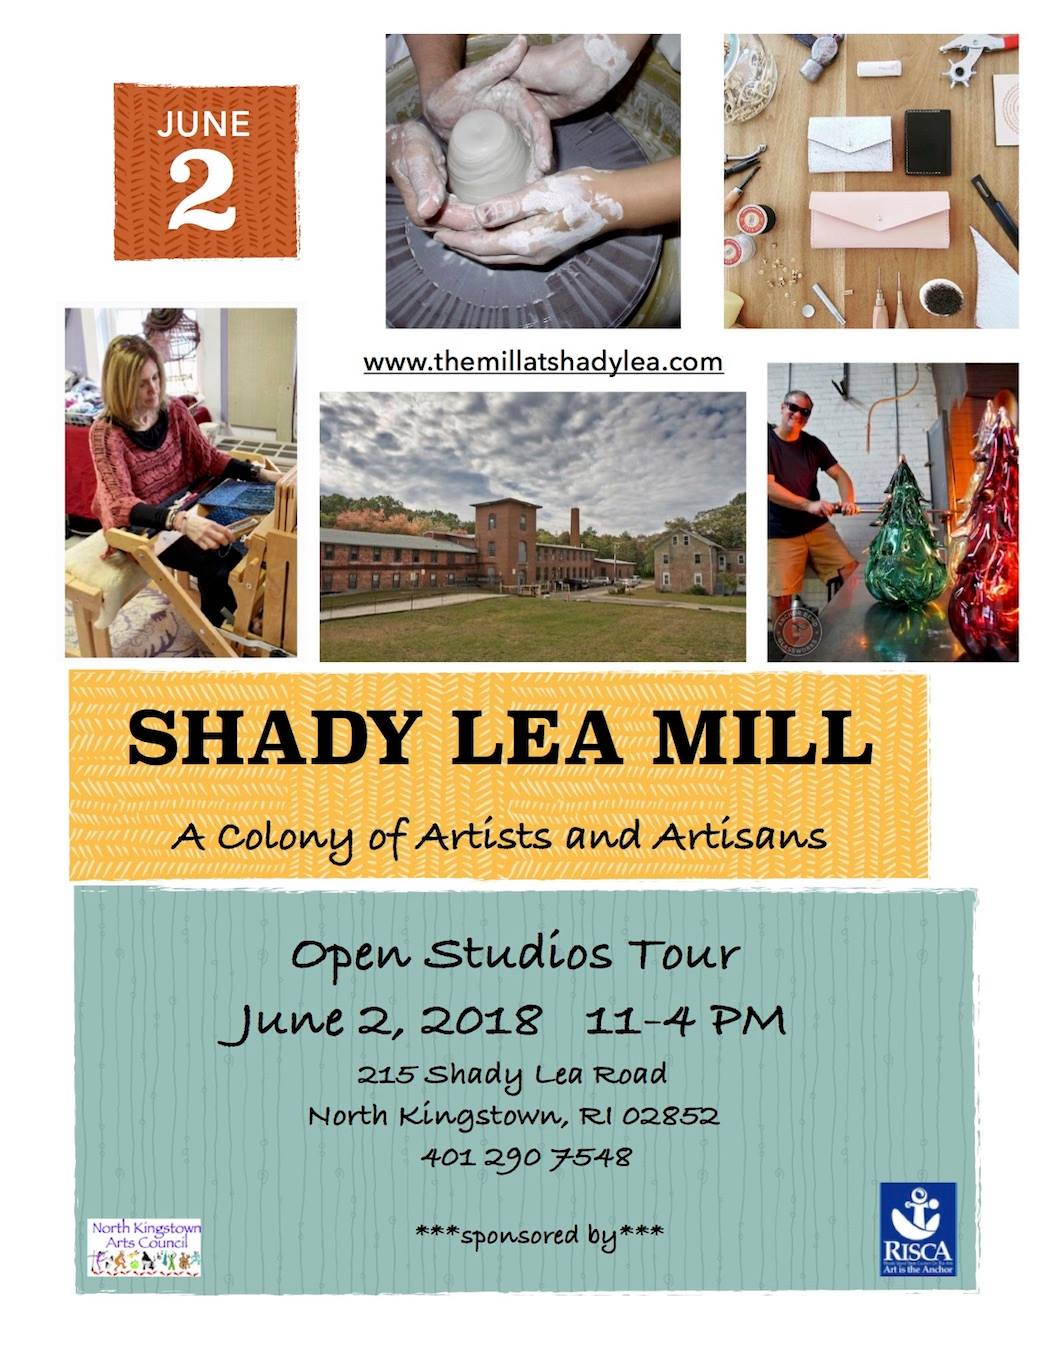 Open Studio Tour Saturday, June 2nd